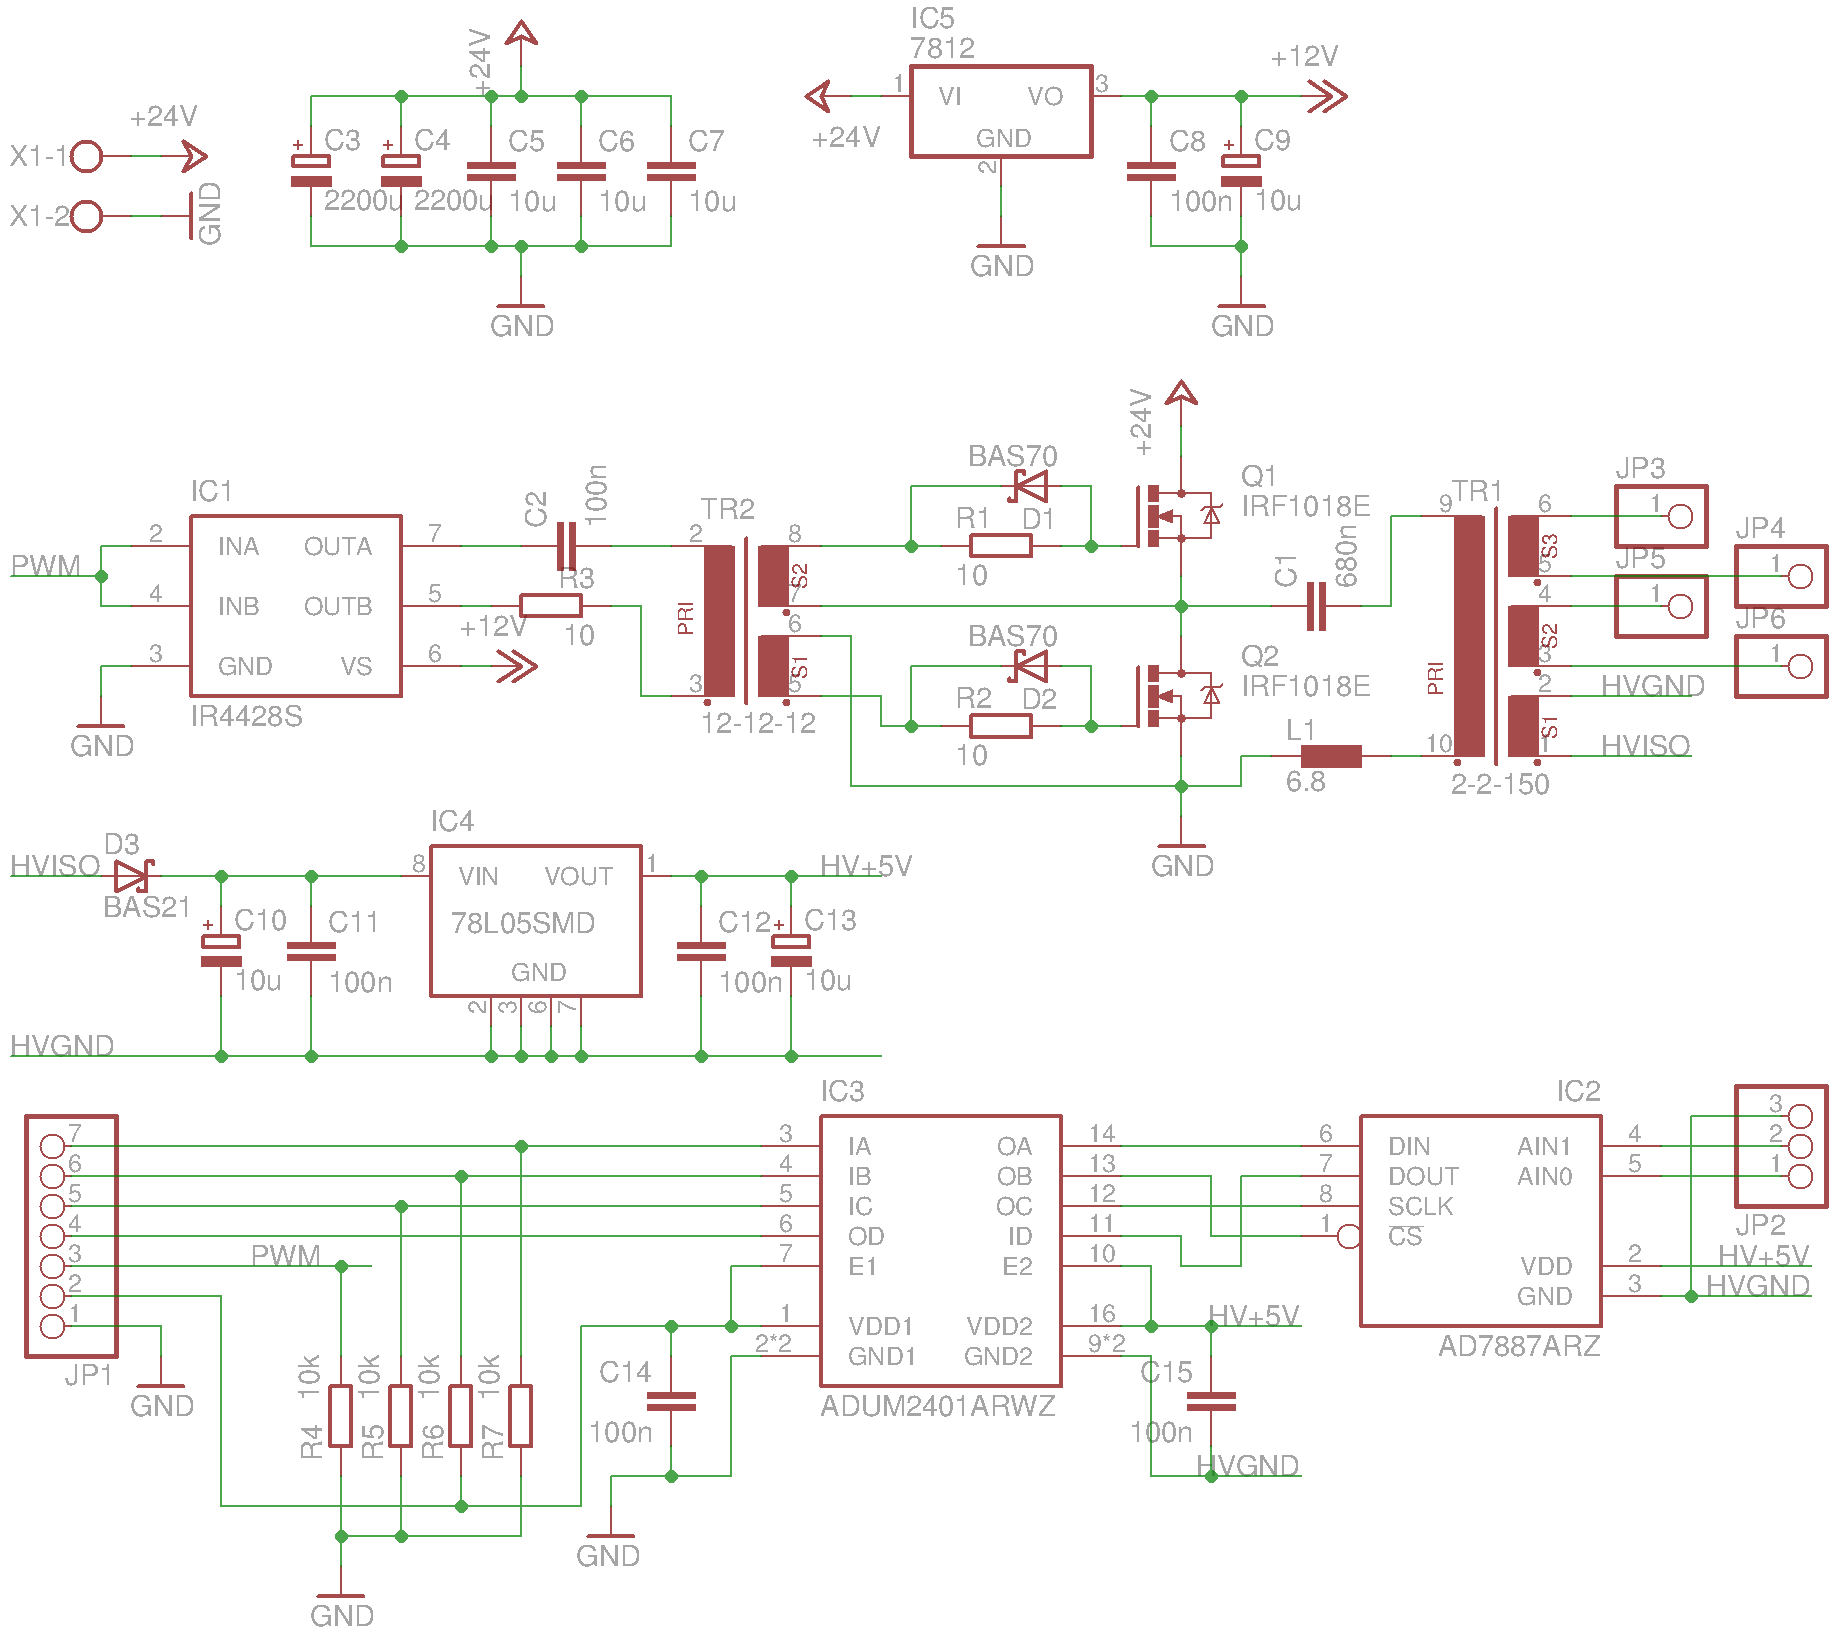 50w Lc Resonant Converter Power Board V1 Whitequarks Lab Notebook Design The Utilizes A Half Bridge Based On Irf1018e Mosfets Q1 And Q2 Driven Using An Irf4428 Driver Ic2 Via Gate Drive Transformer Tr2